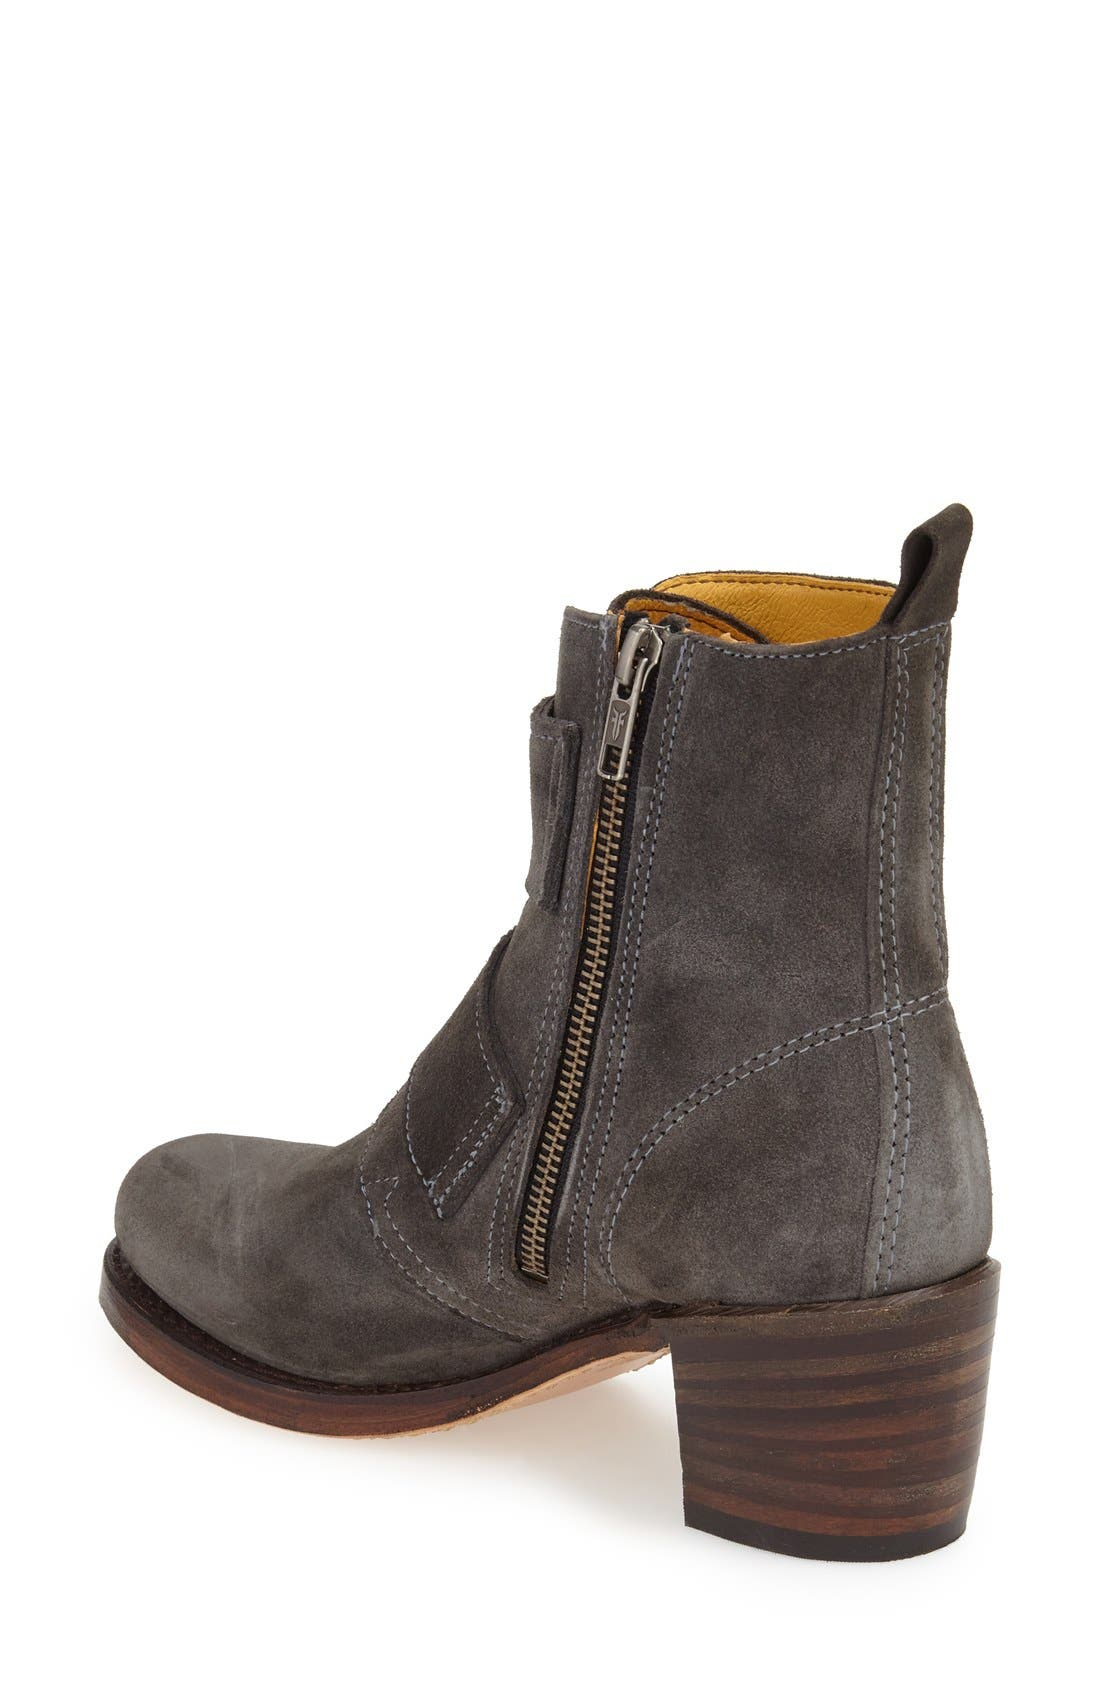 'Sabrina' Double Buckle Boot,                             Alternate thumbnail 6, color,